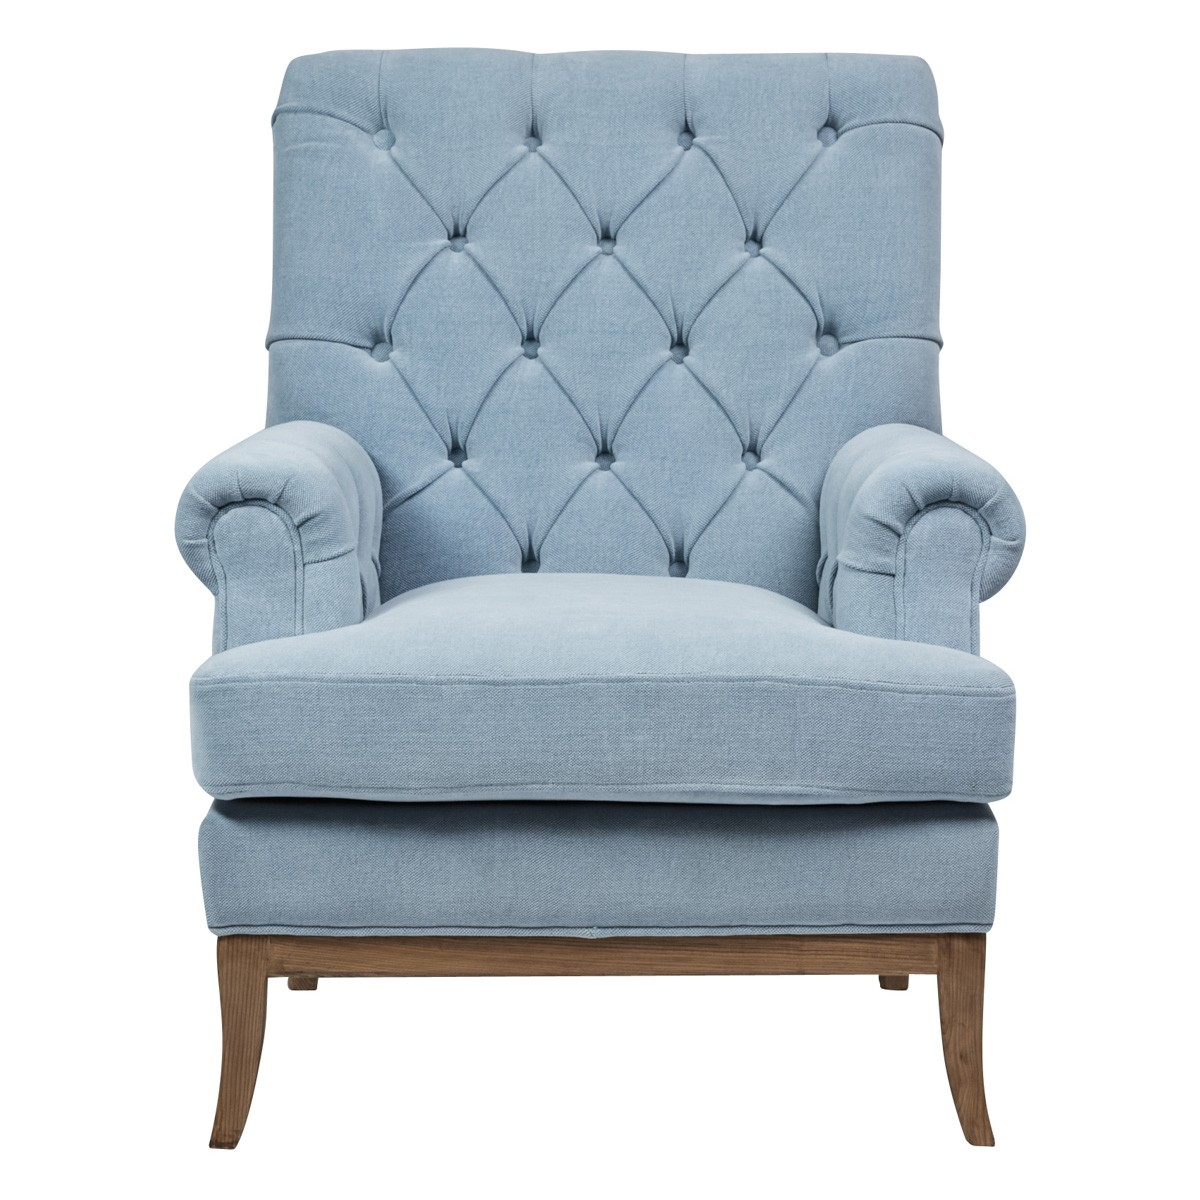 Louisa Velours Fabric Armchair, Blue